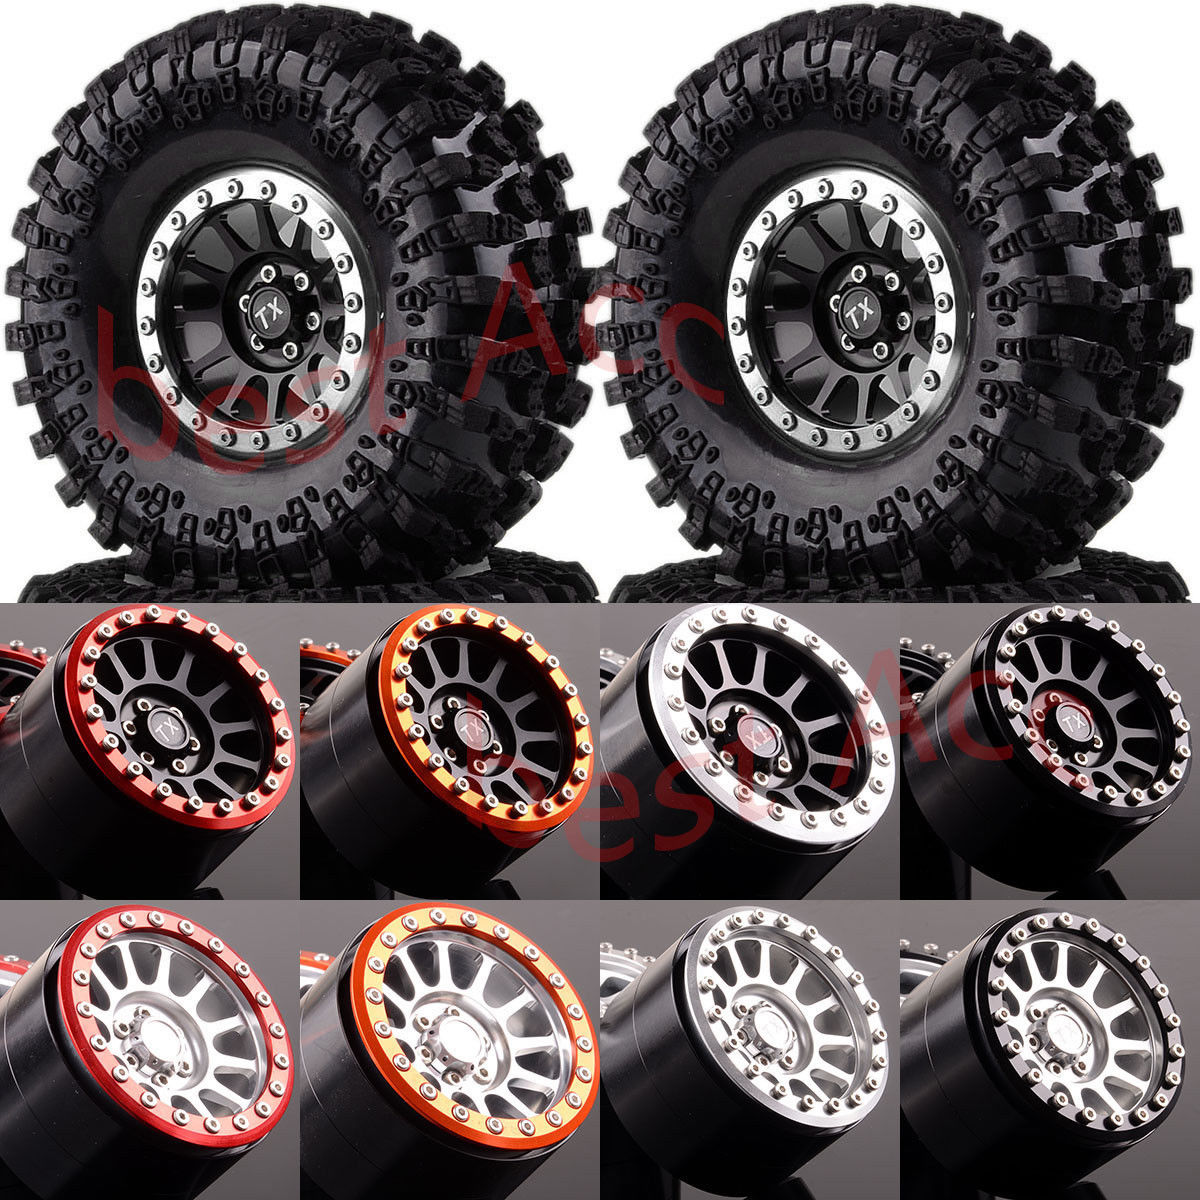 2022 3021 1 10 4P Aluminum 2 2 Beadlock Wheels Rim TIRES For RC Rock Crawler